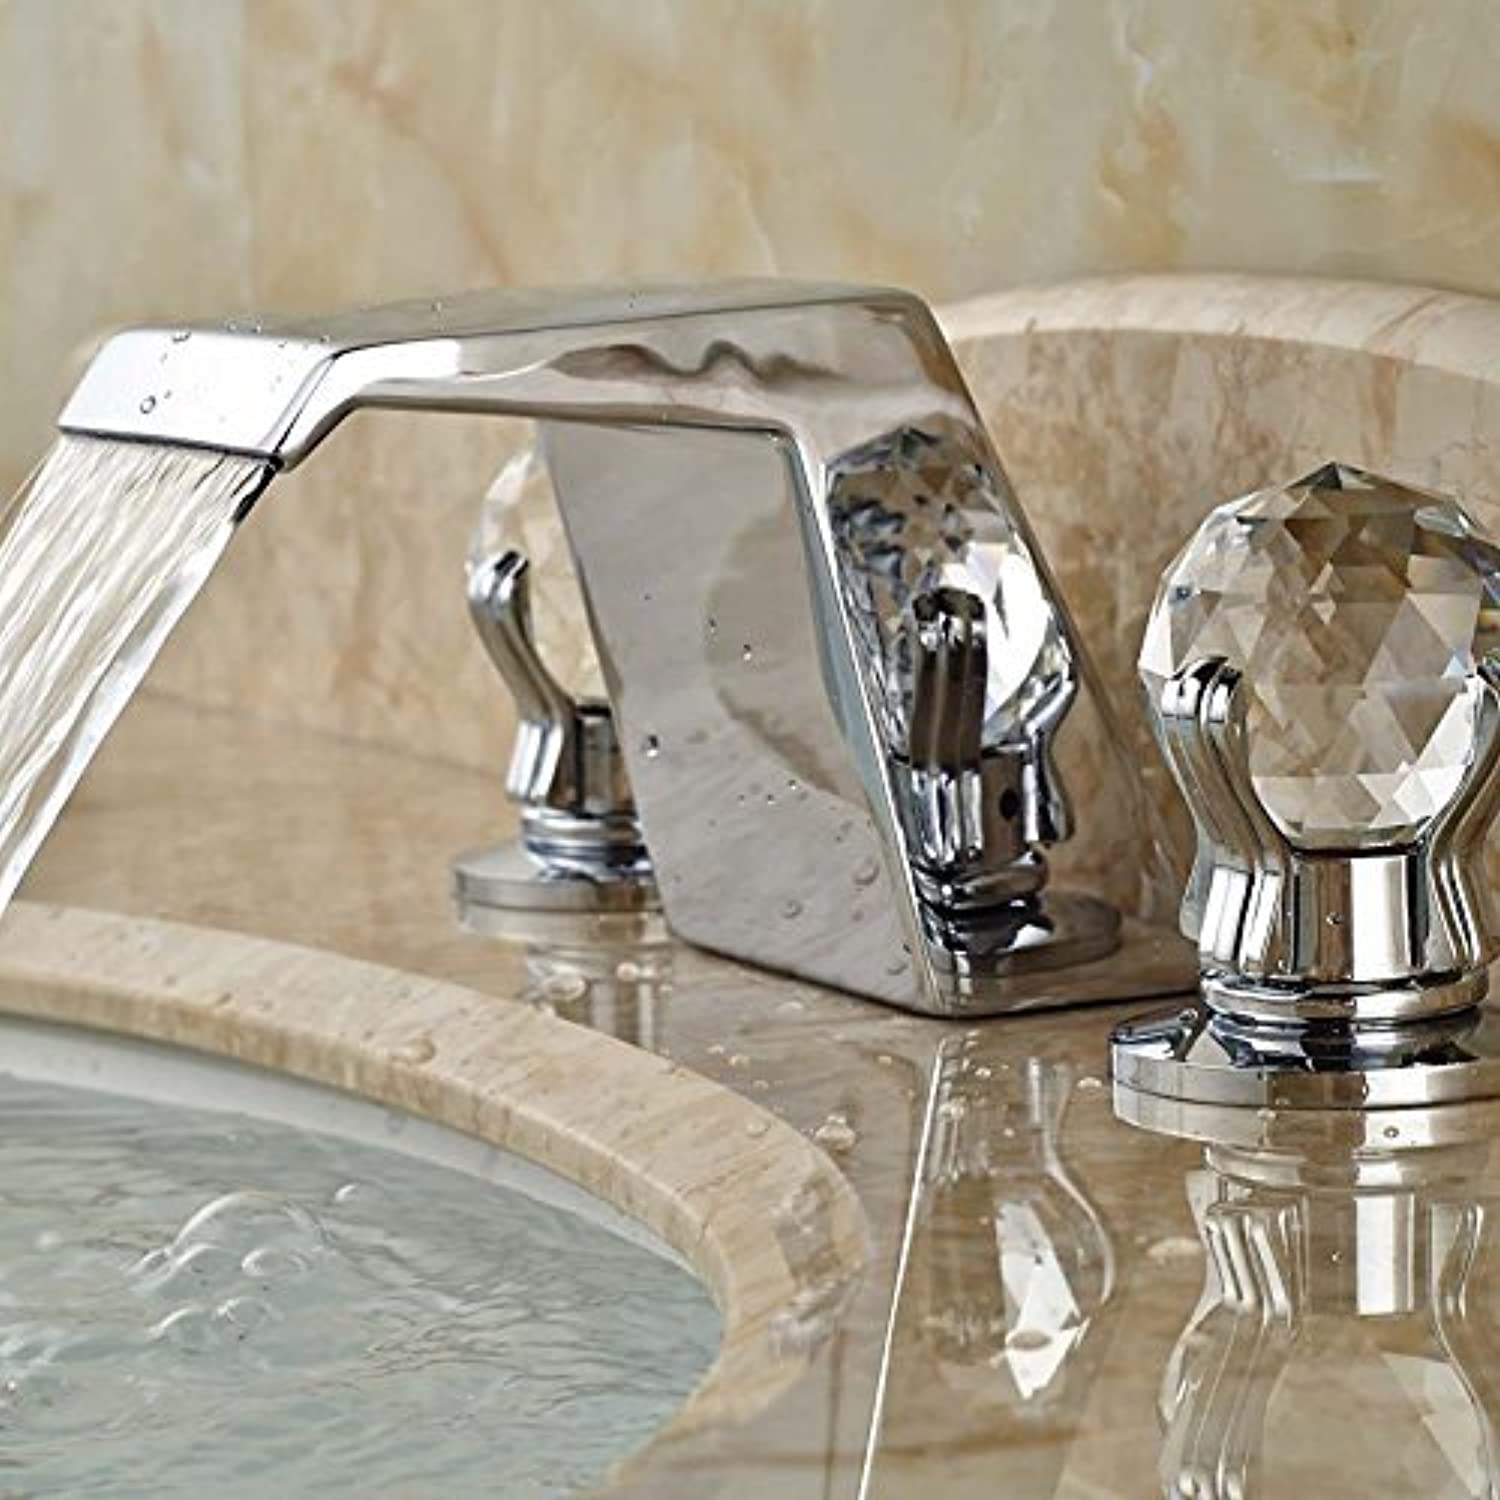 Chrome Plated Brass Mount Bridge of countertop basins taps Seven New Form Two Handles Water Connection